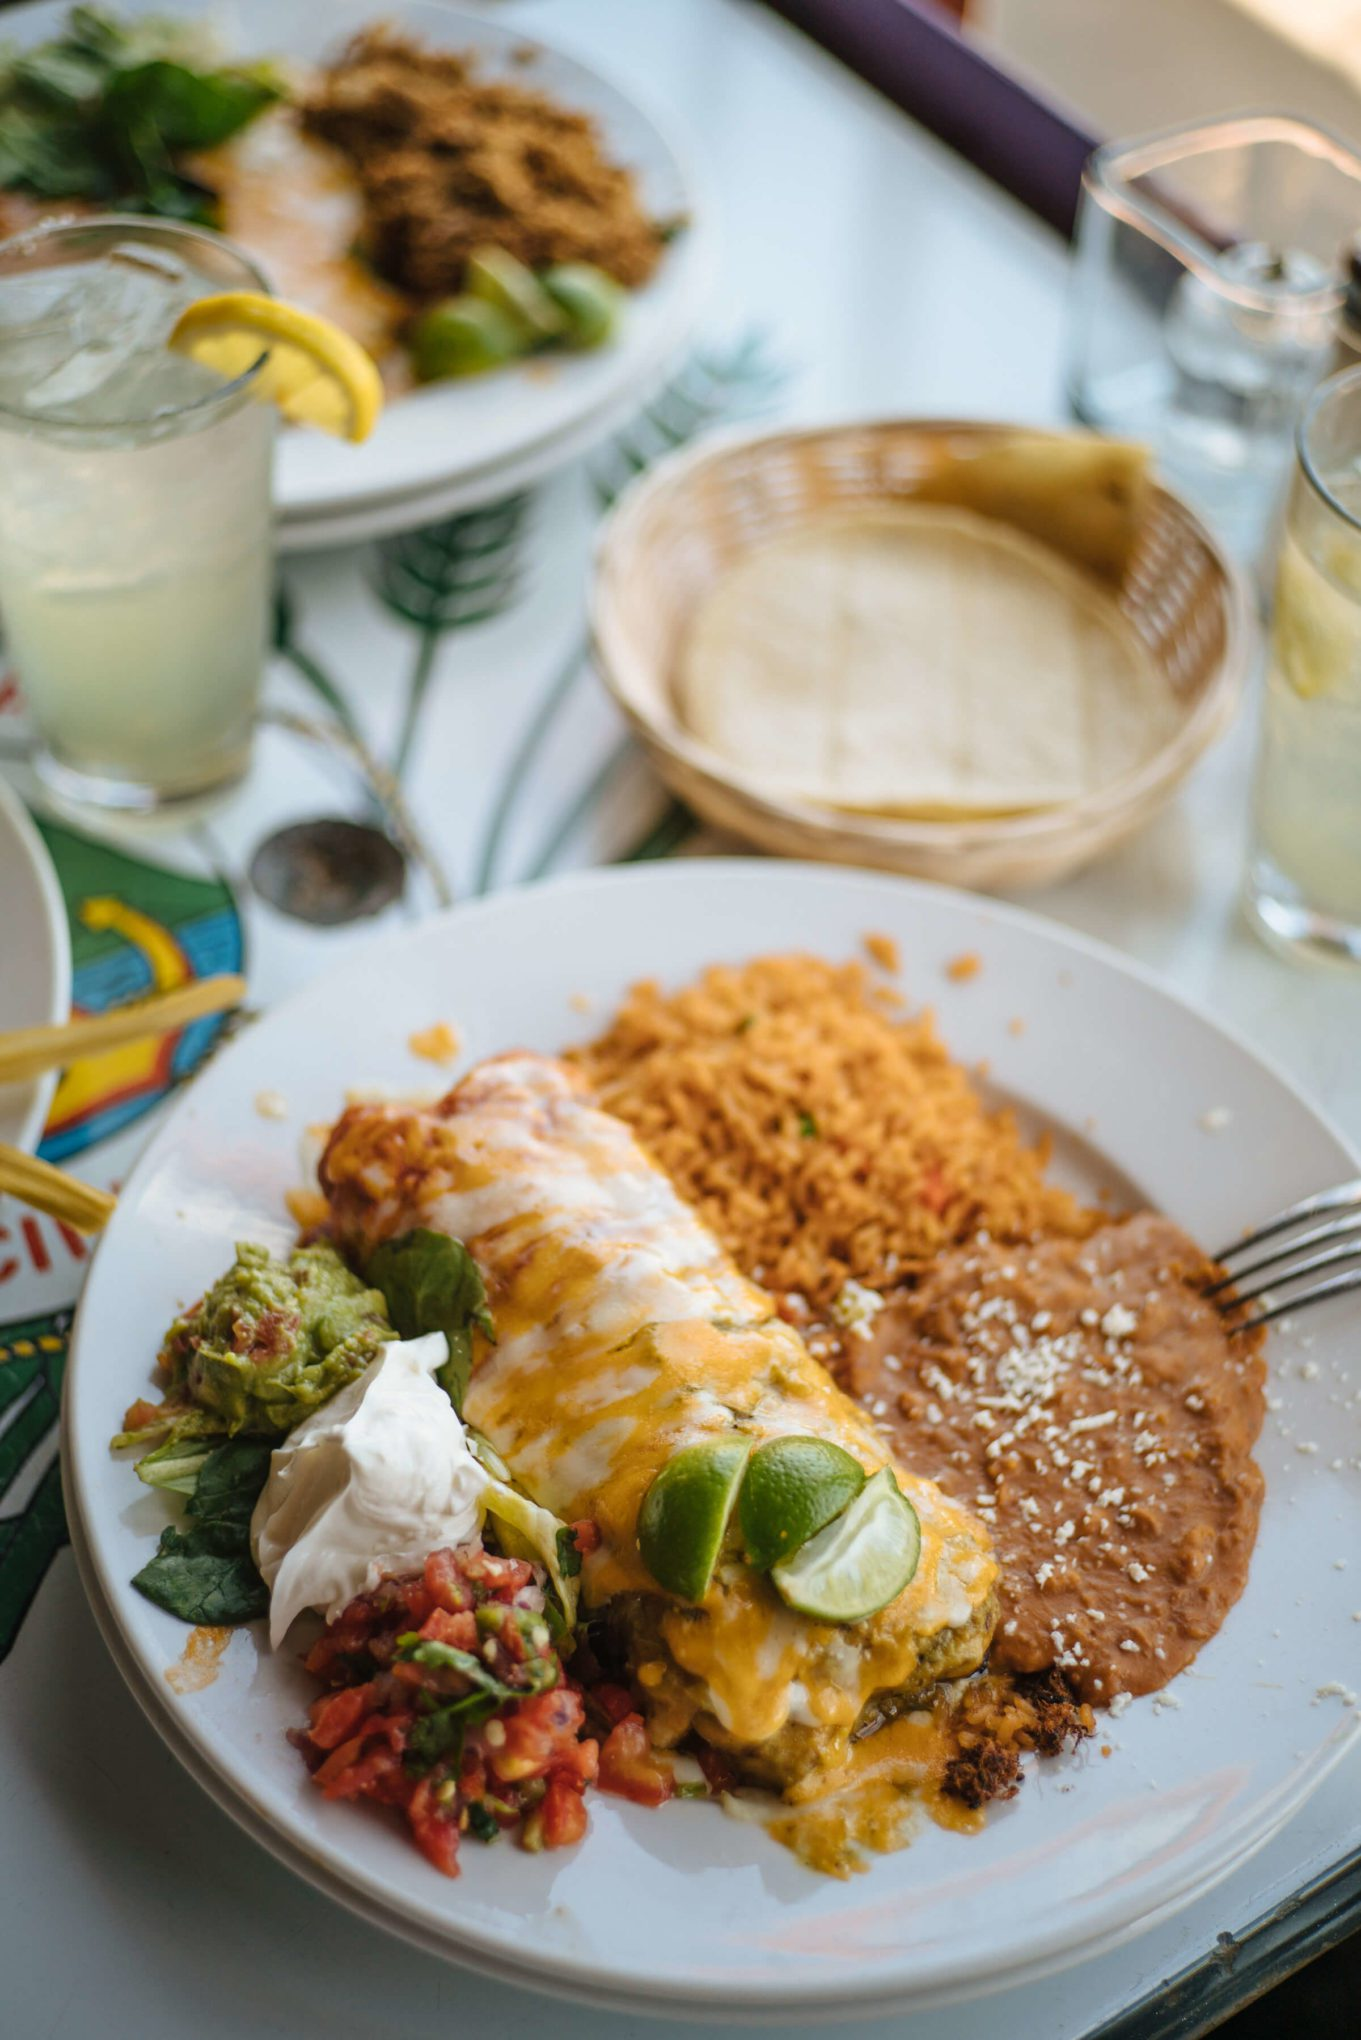 Try the oldest mexican restaurant in the united states El Charro Cafe is a Tucson Arizona, The Taste Edit